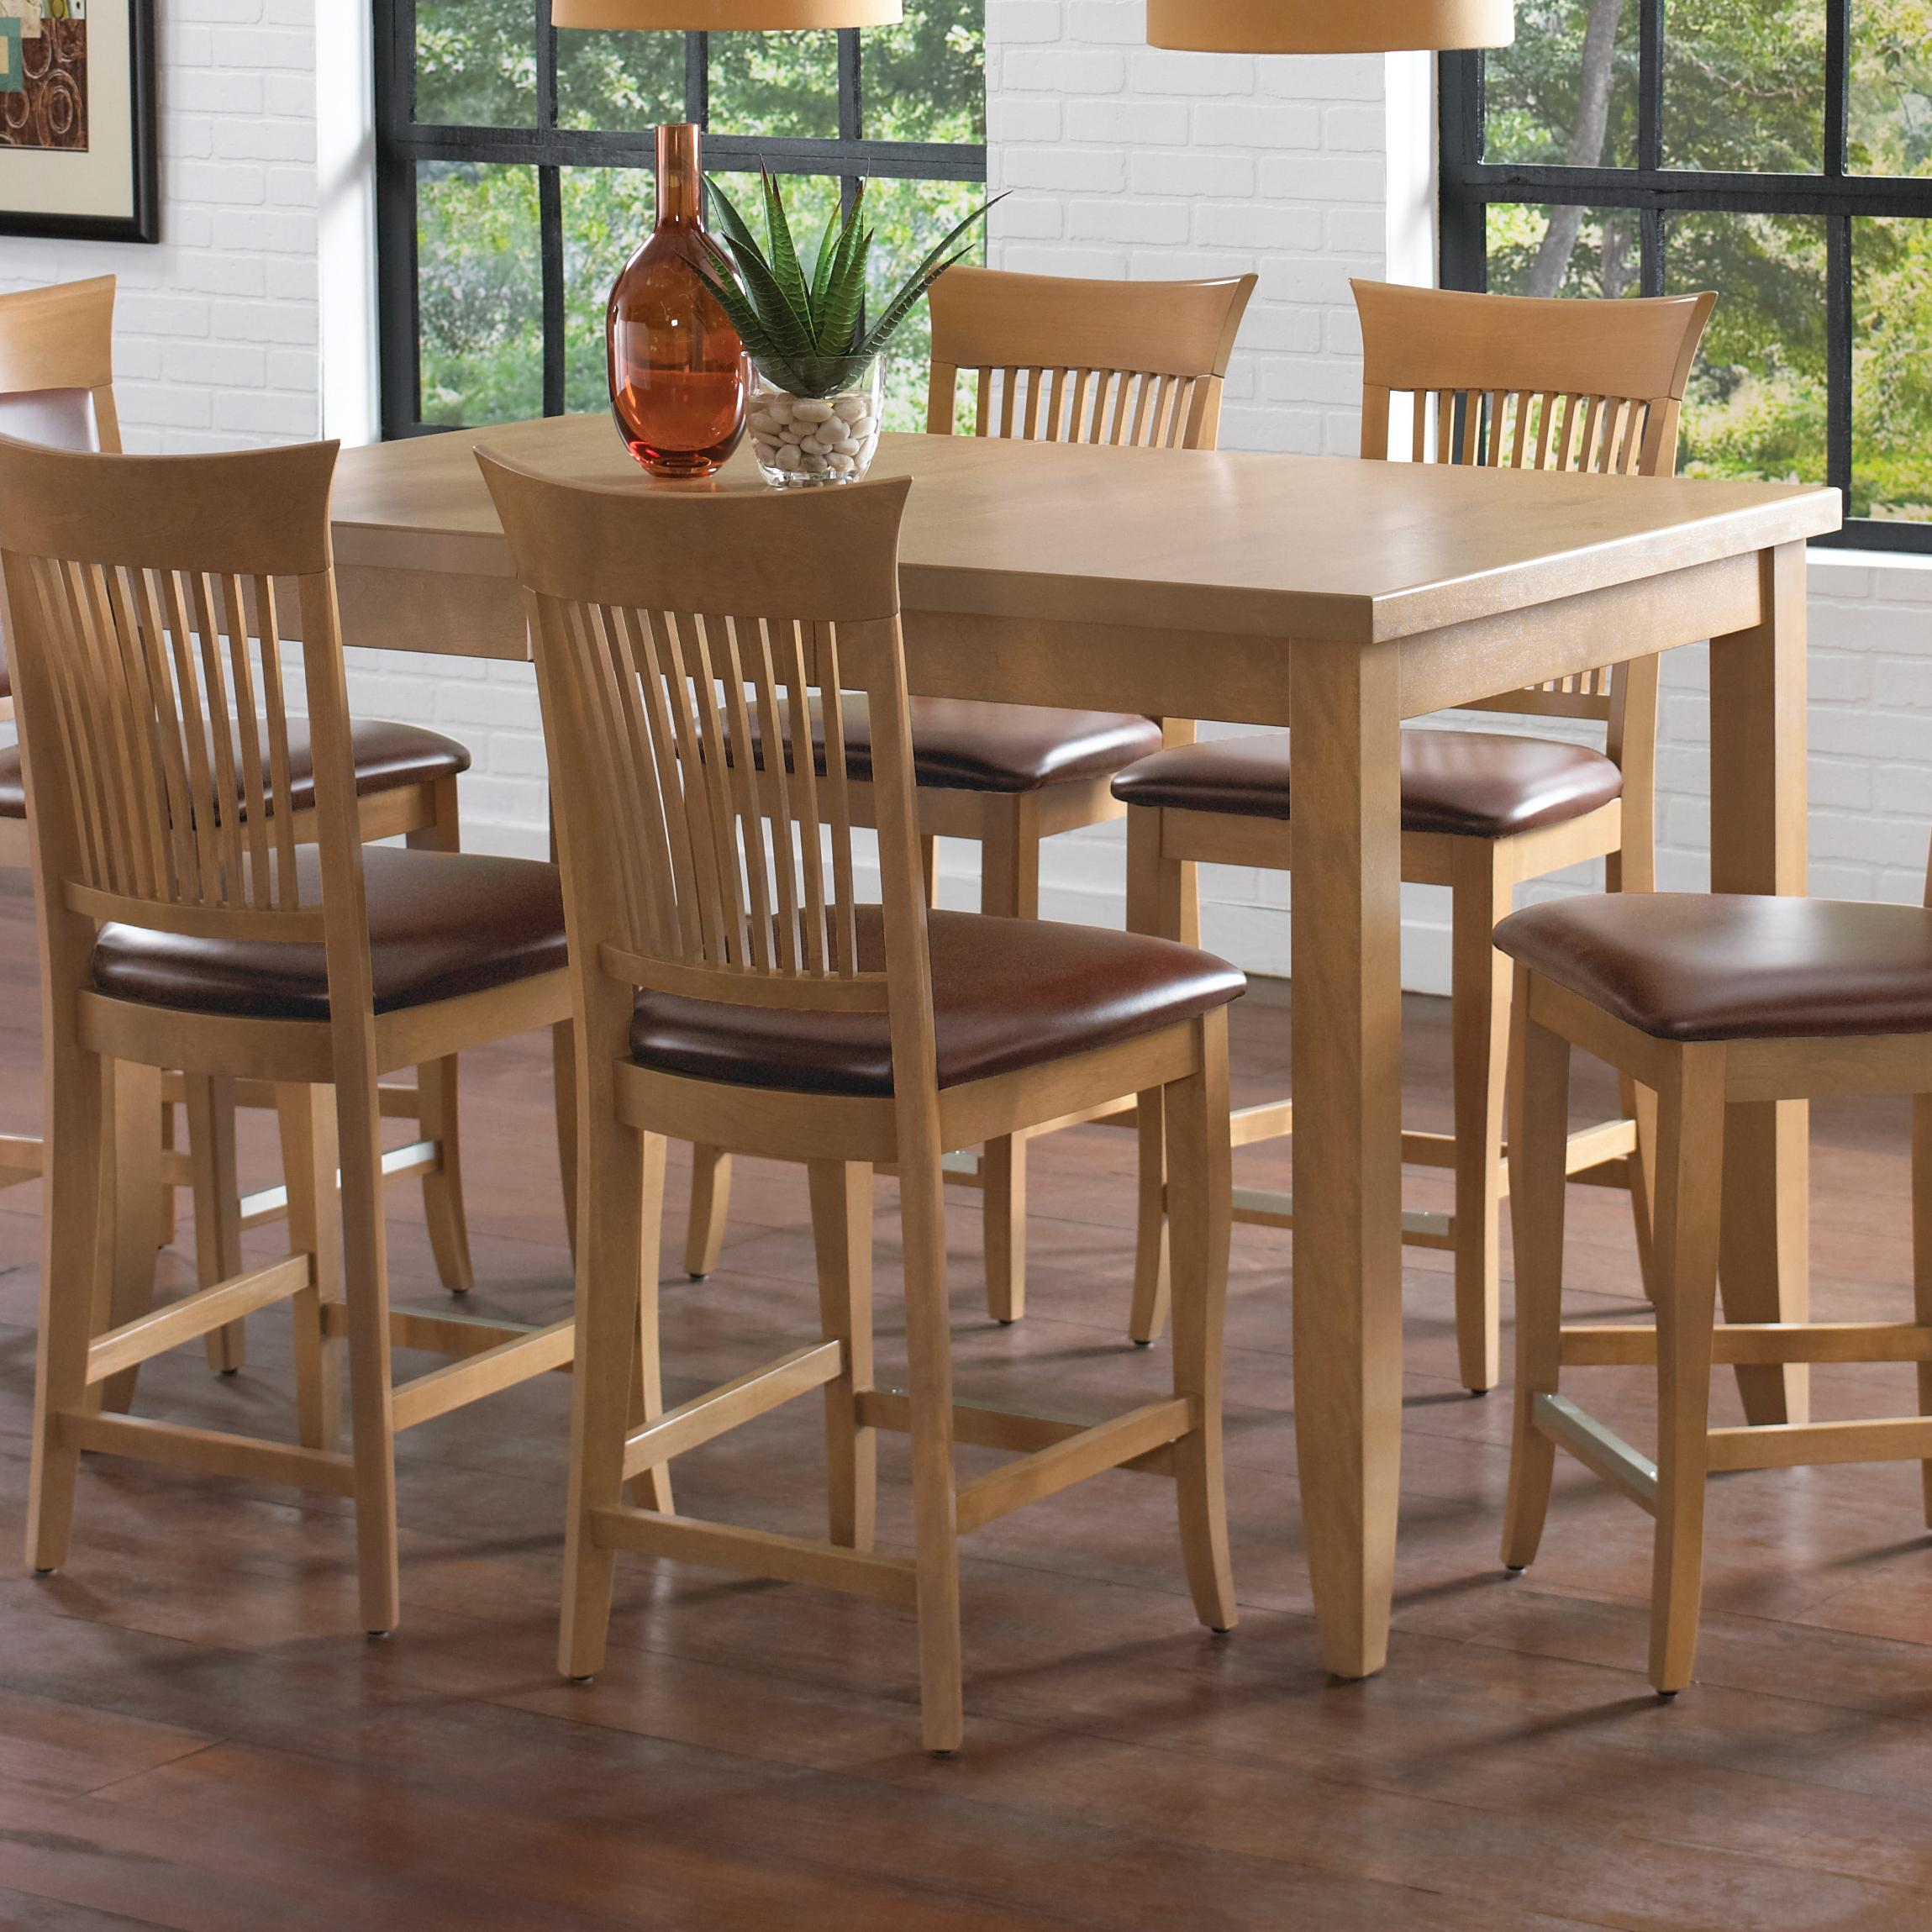 Canadel custom dining high customizable